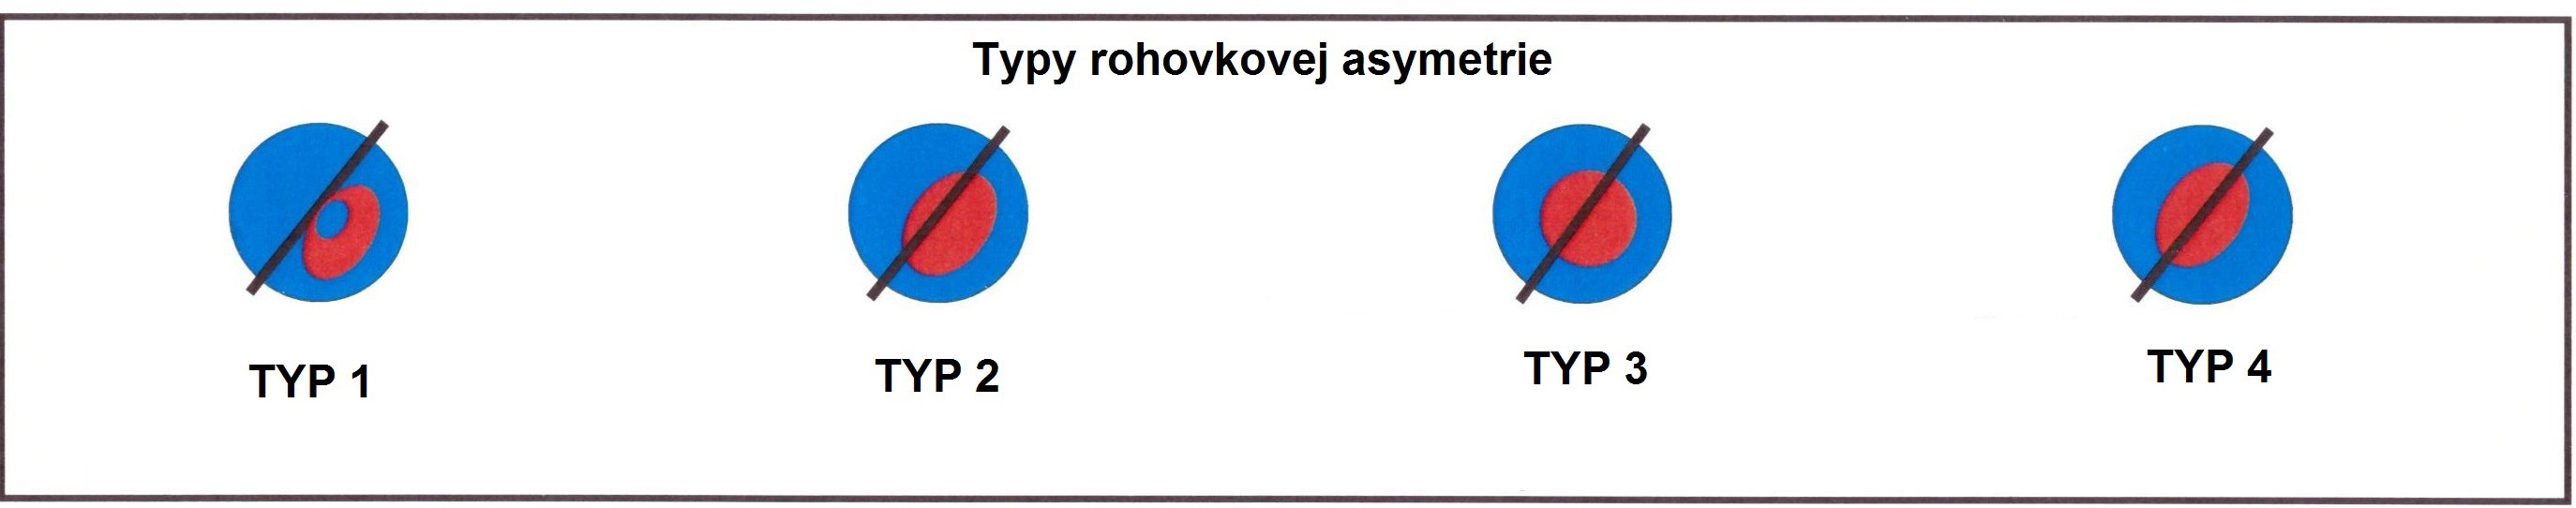 Types of corneal assymetry used for Keraring calculations